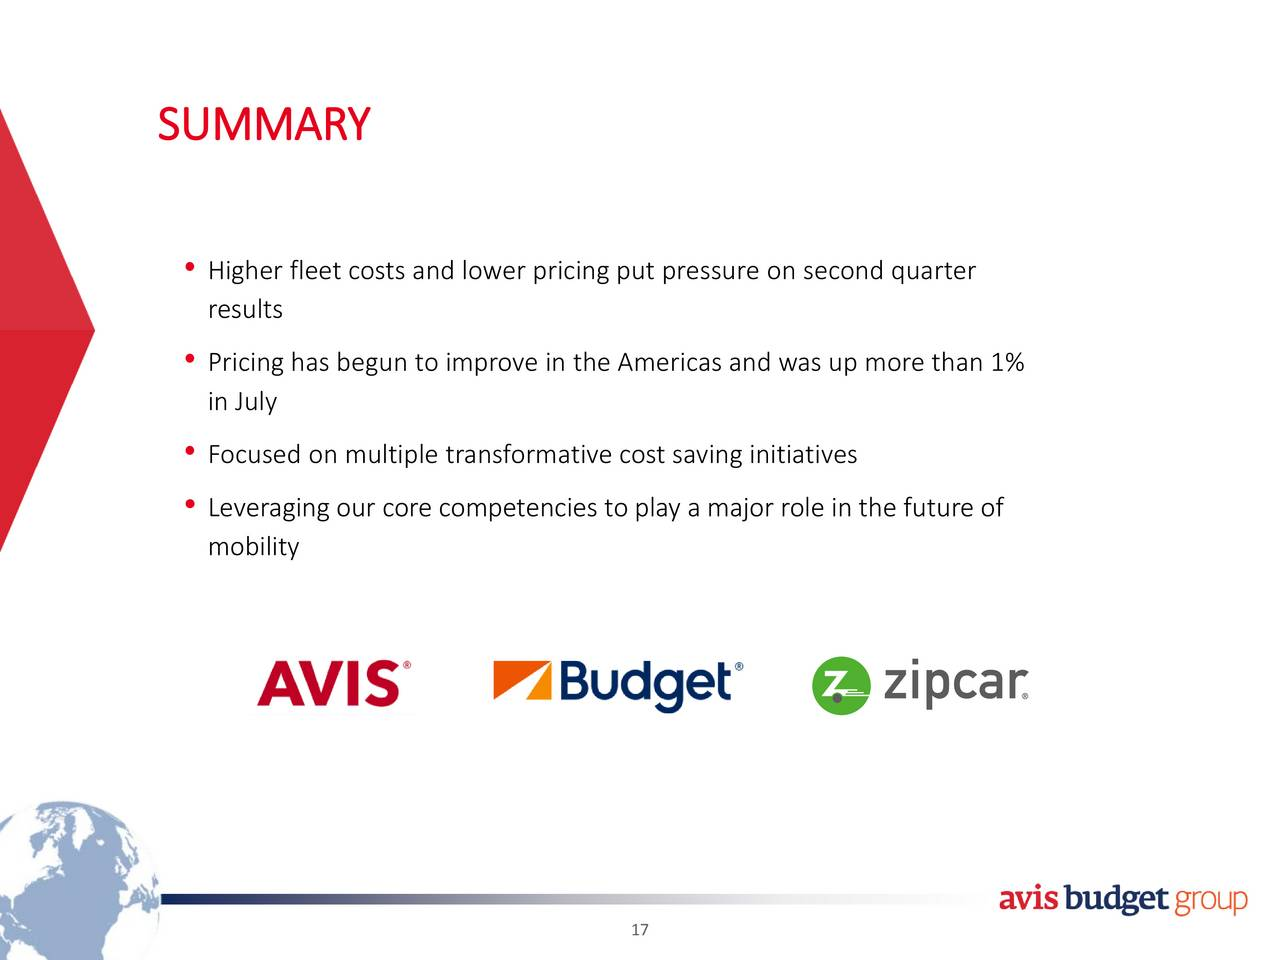 avis budget group inc 2017 q2 results earnings call slides avis budget group inc. Black Bedroom Furniture Sets. Home Design Ideas